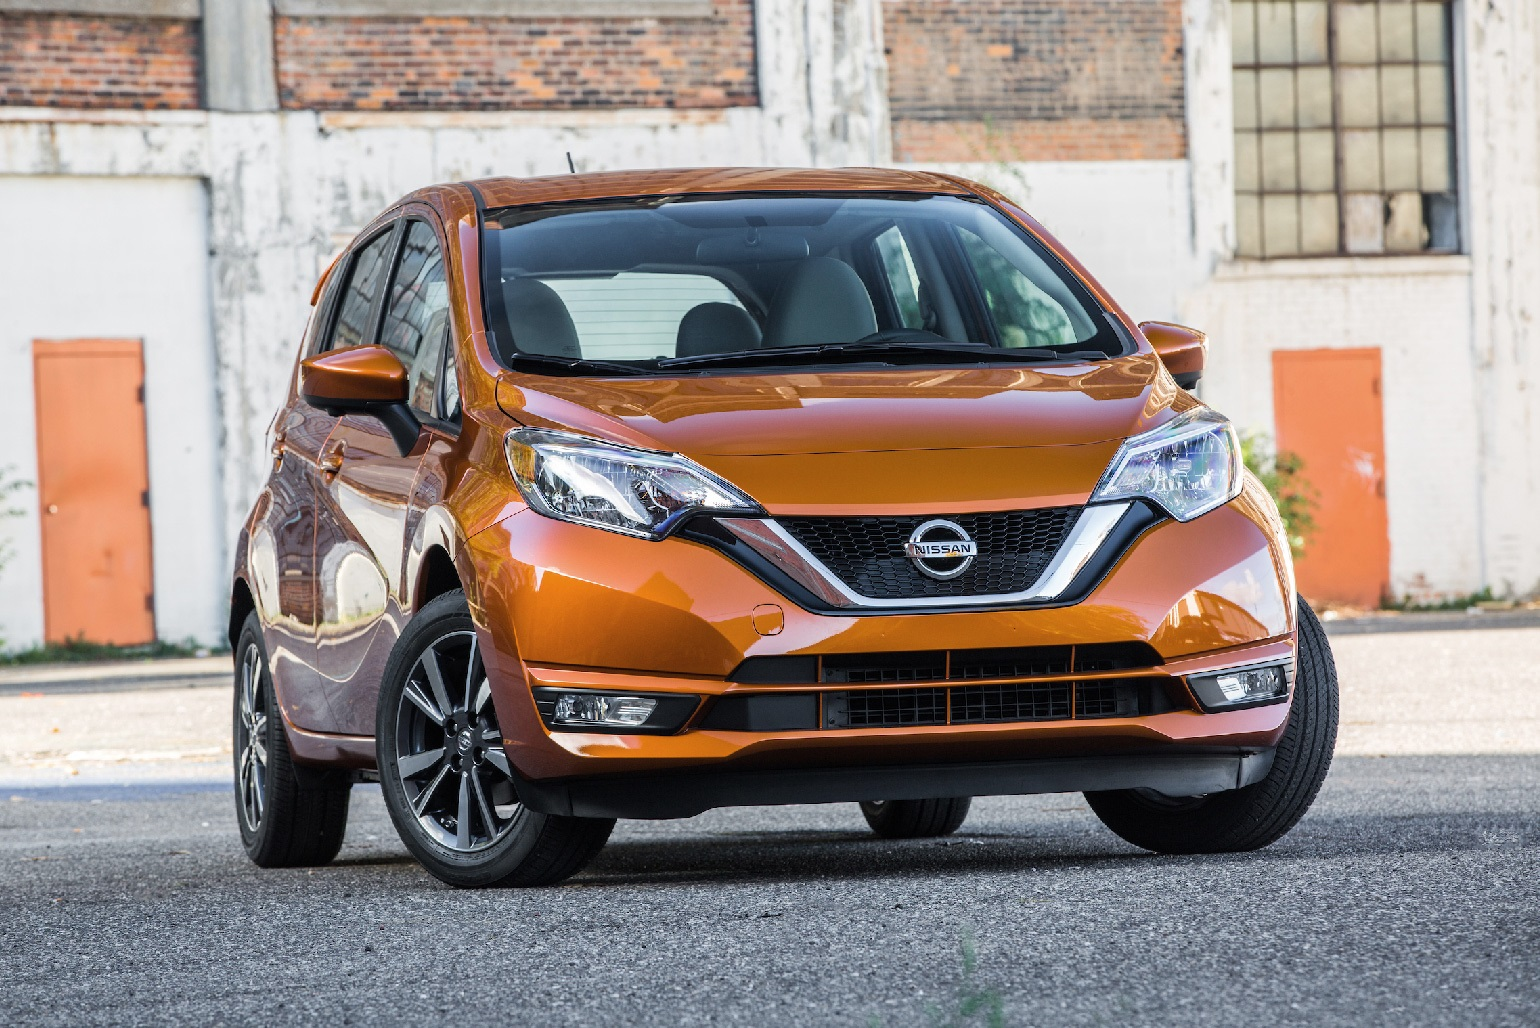 Cool For School An EV Range Record And Growing Newcar Appeal - Cool 2017 cars